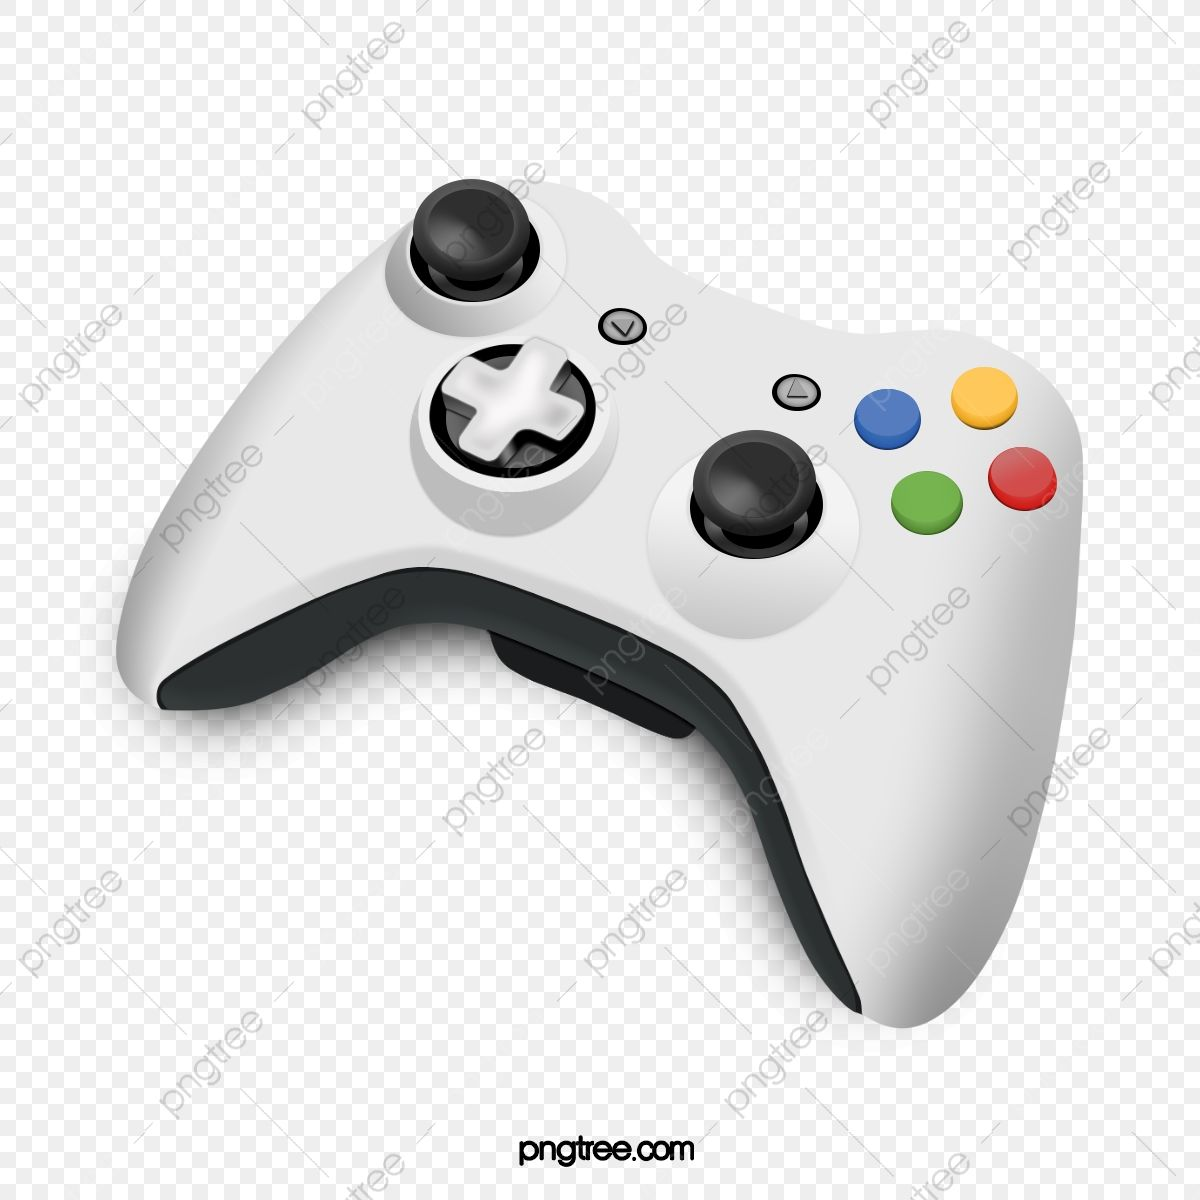 Video Game Controller Controller Clipart Handle Game Handle Png Transparent Clipart Image And Psd File For Free Download Video Game Controller Game Controller Game Remote